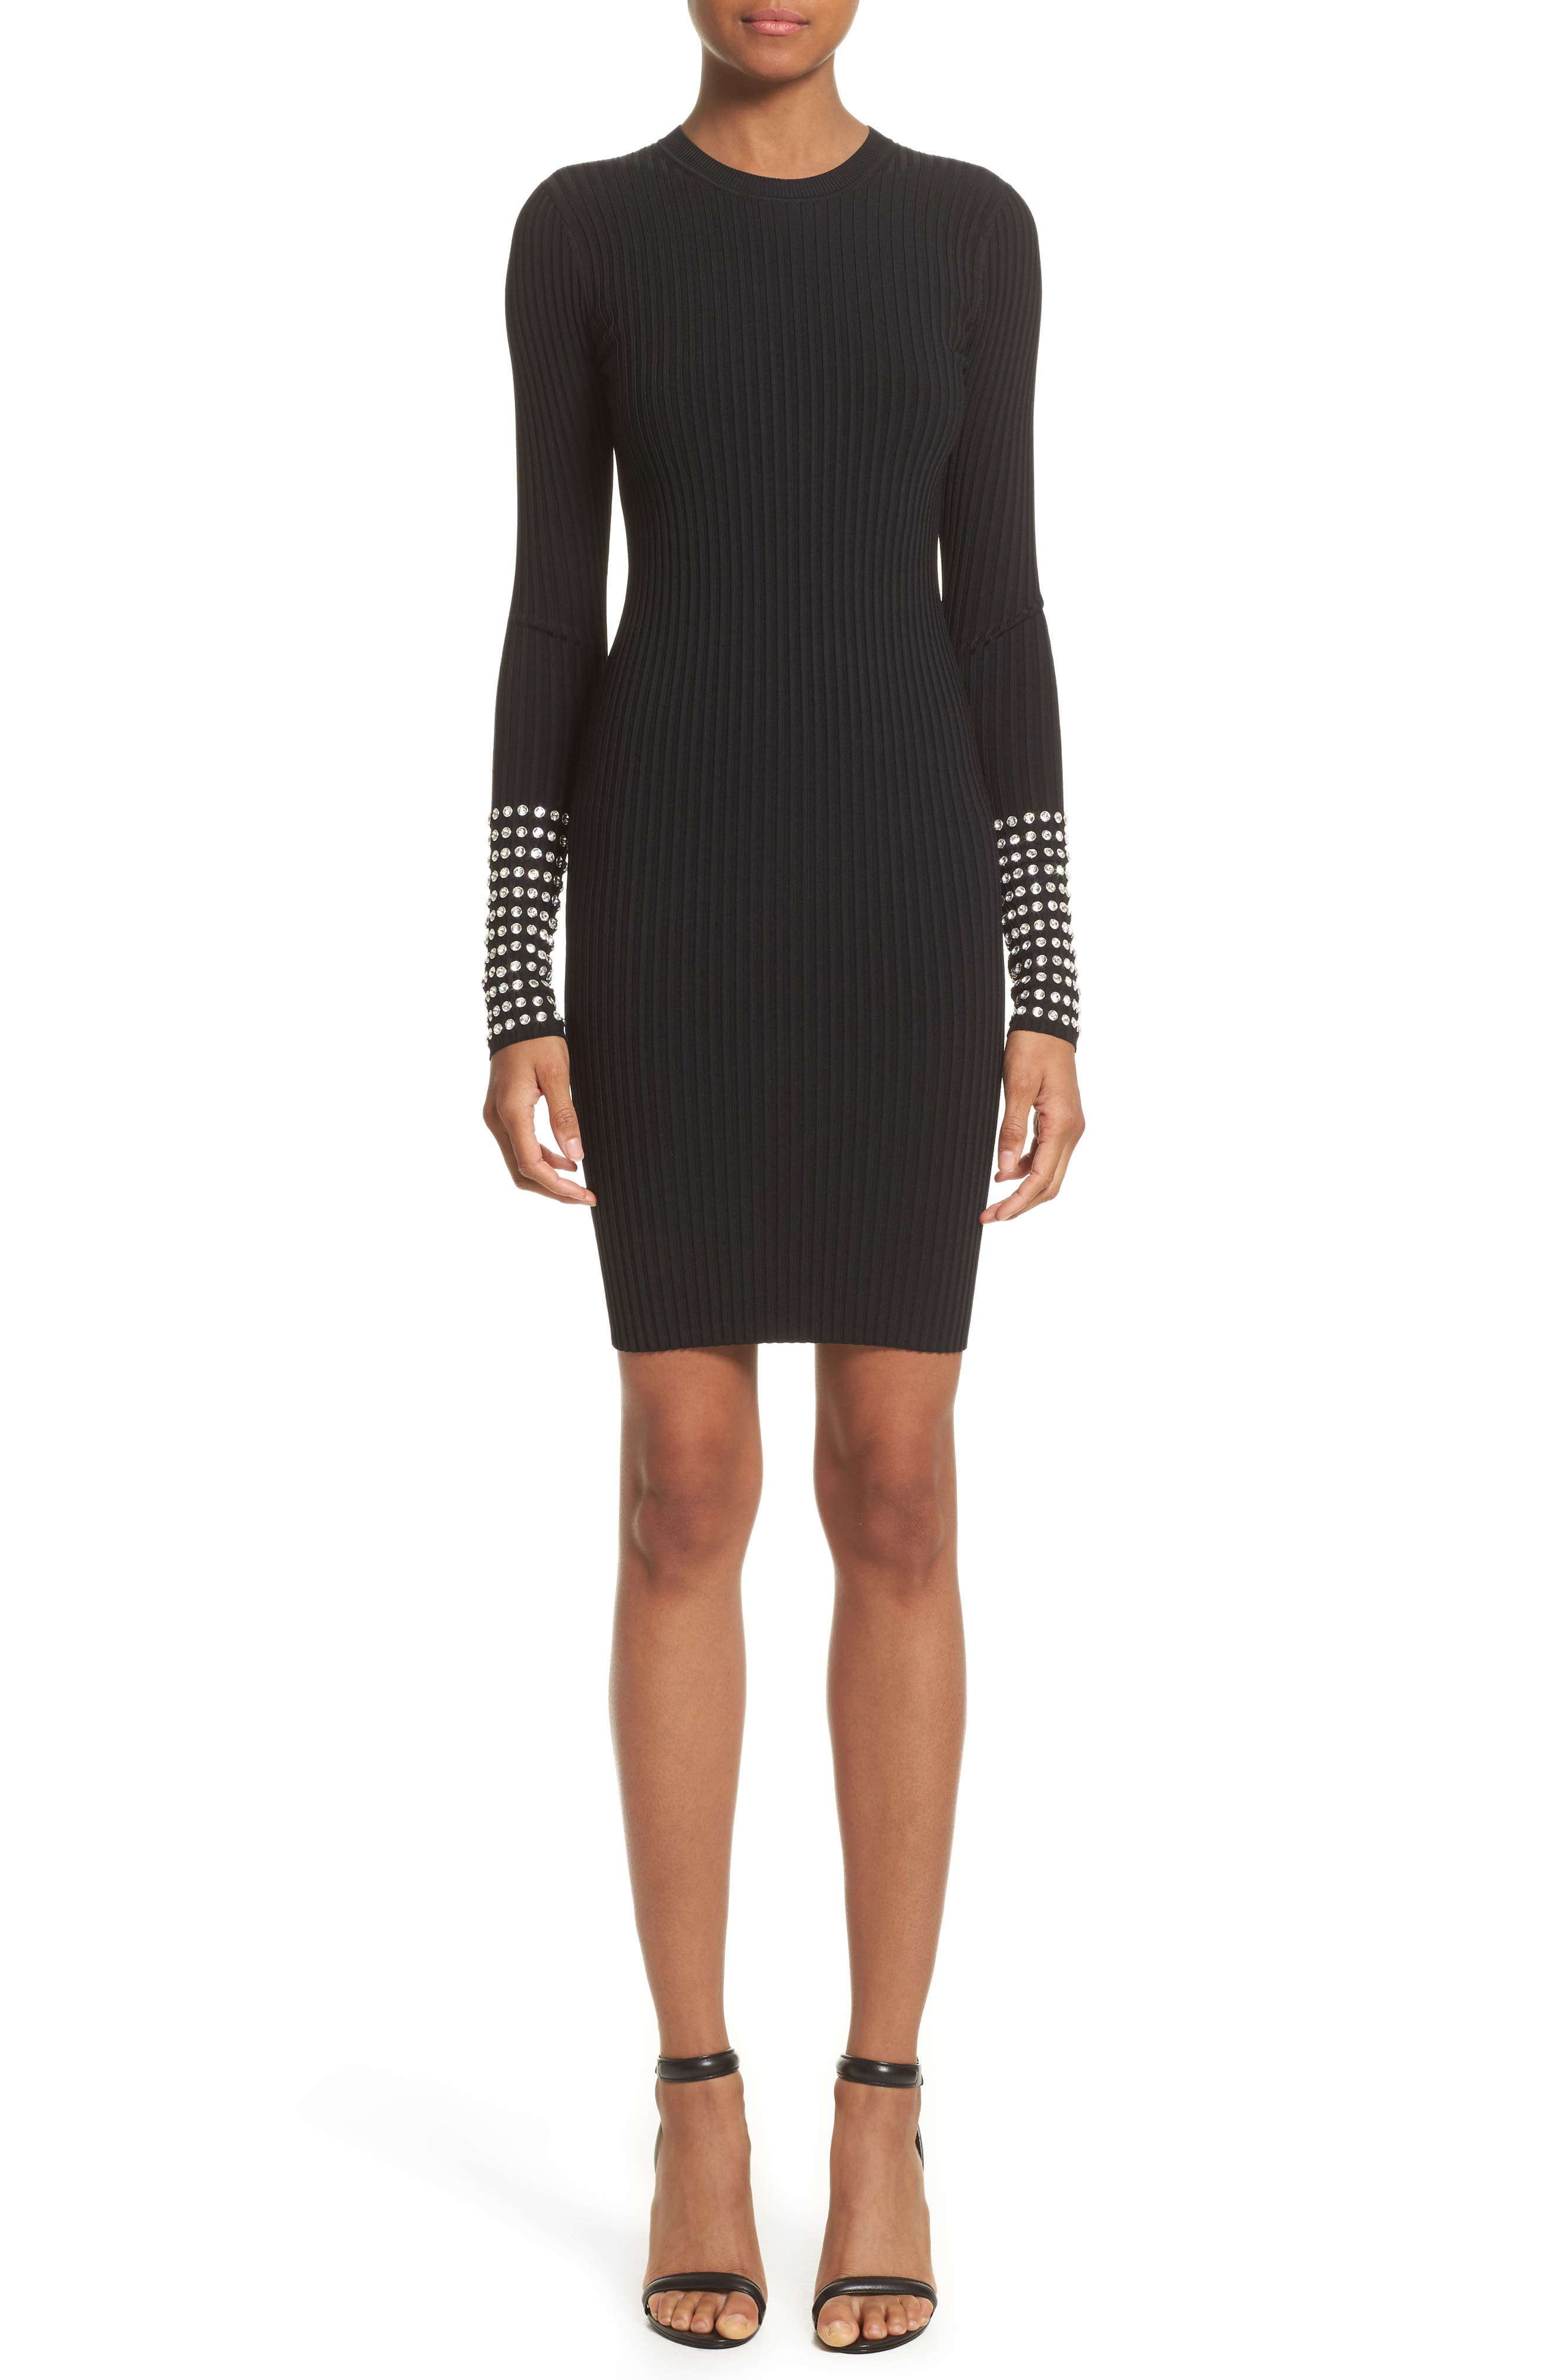 Crystal Cuff Rib Knit Dress,                             Main thumbnail 1, color,                             Black